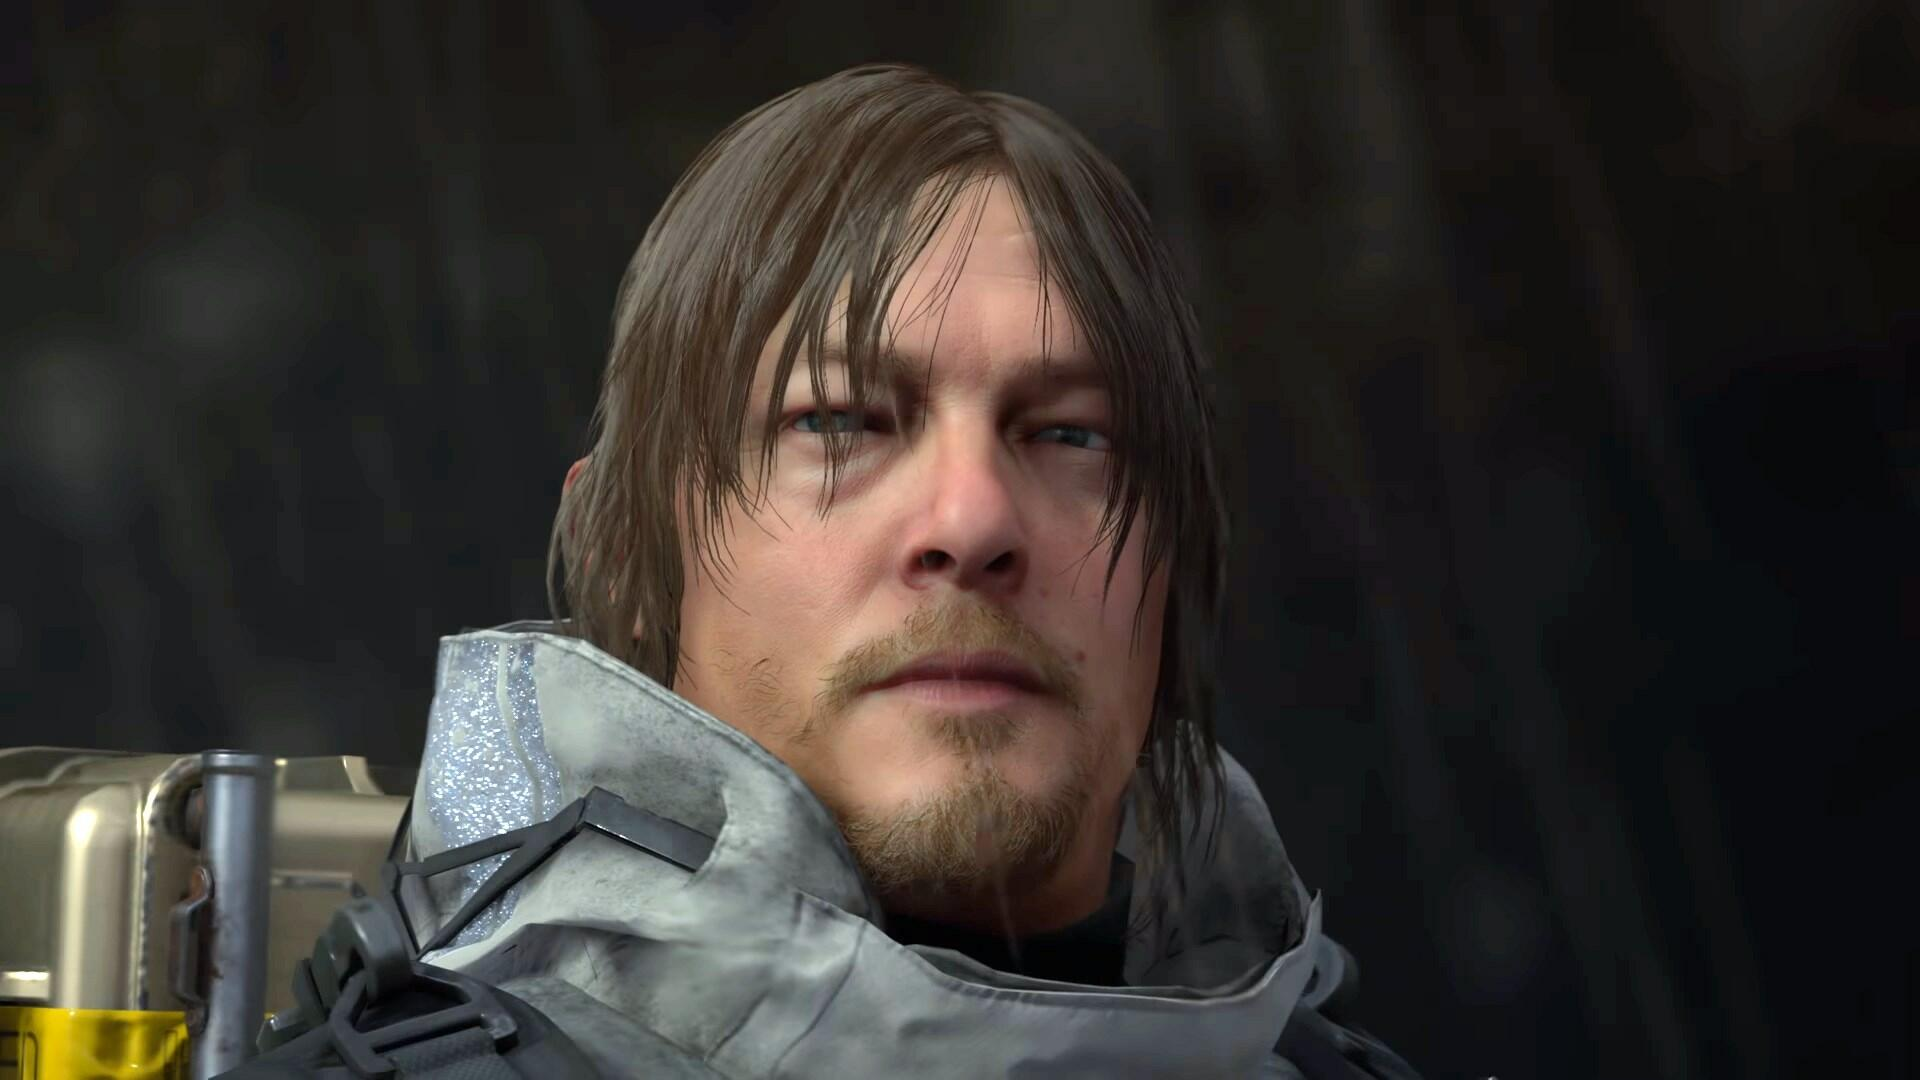 Death Stranding is About Being Connected to the Internet But Disconnected From the Real World, Kojima Says